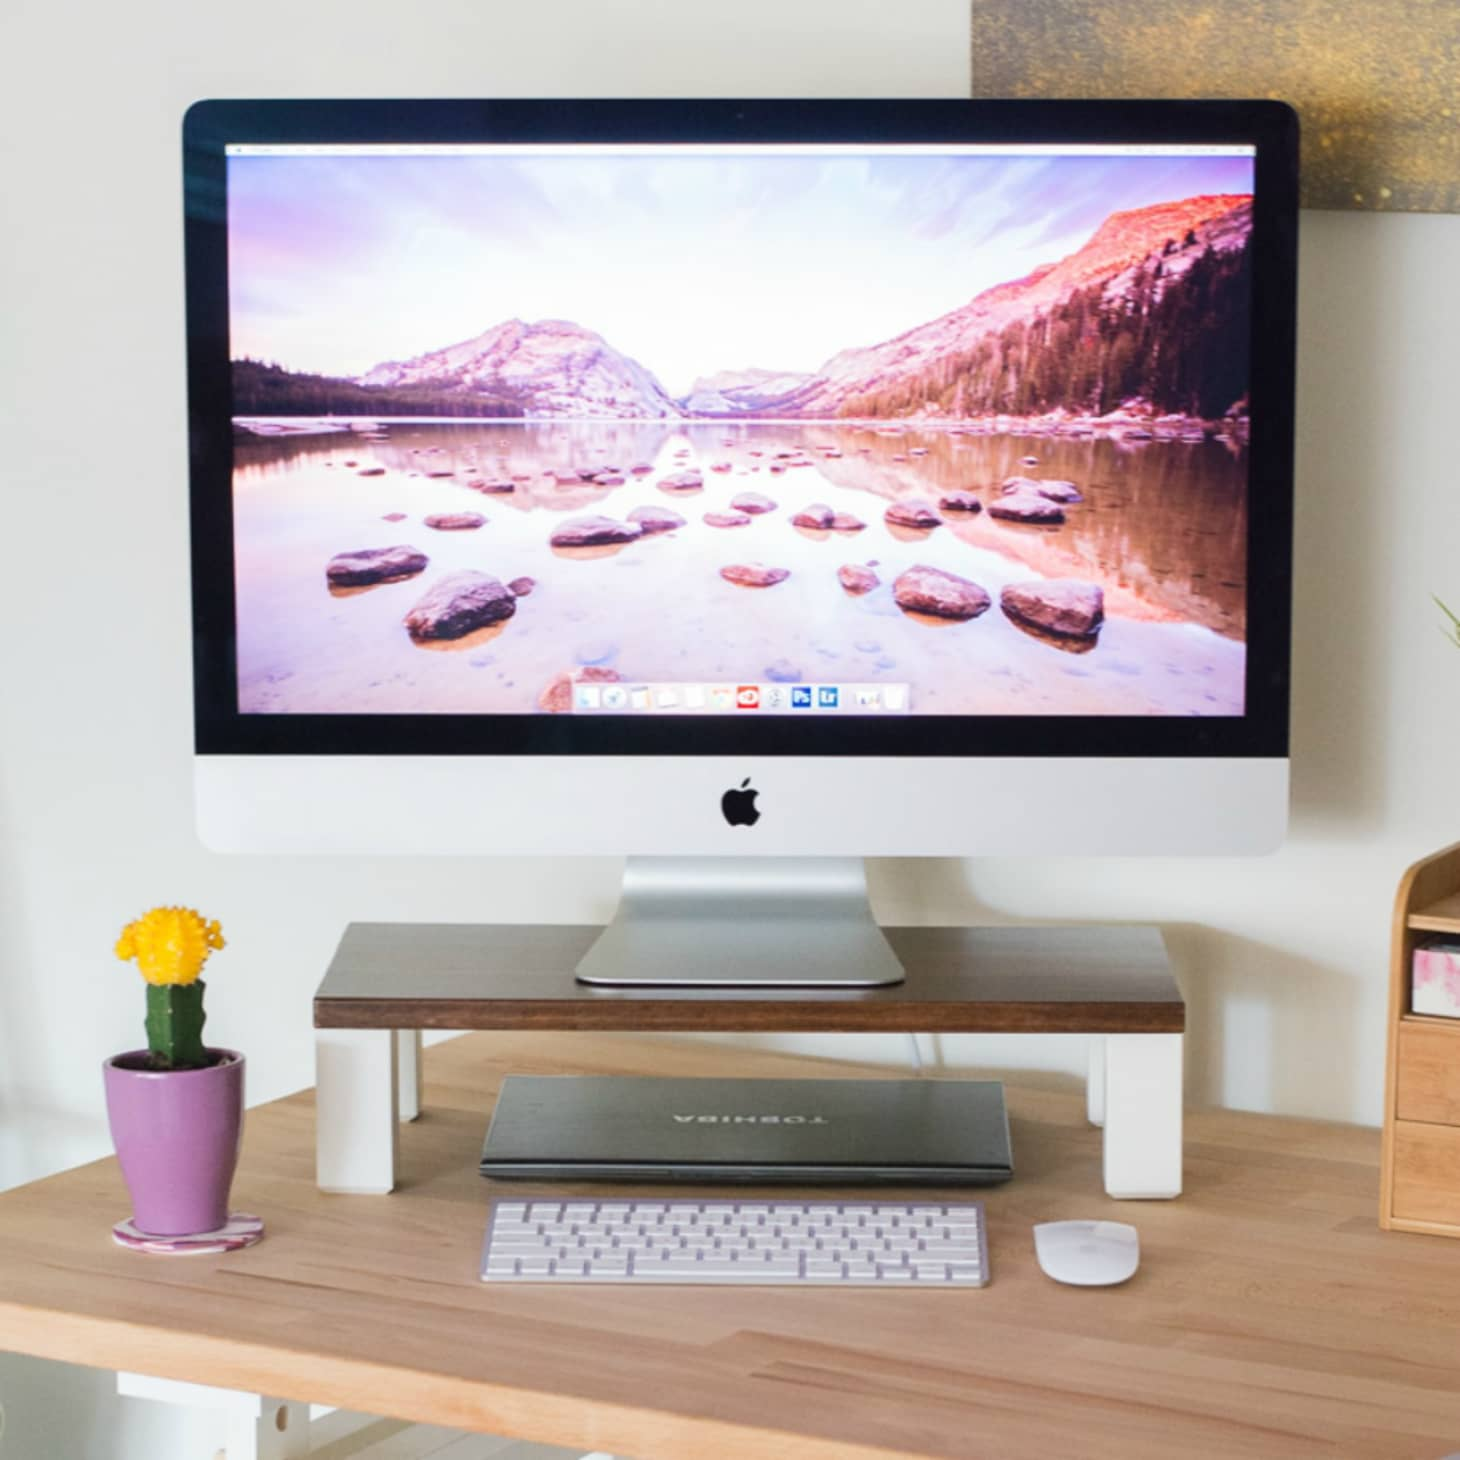 5 Ways to Organize a Desk Without Drawers | Apartment Therapy